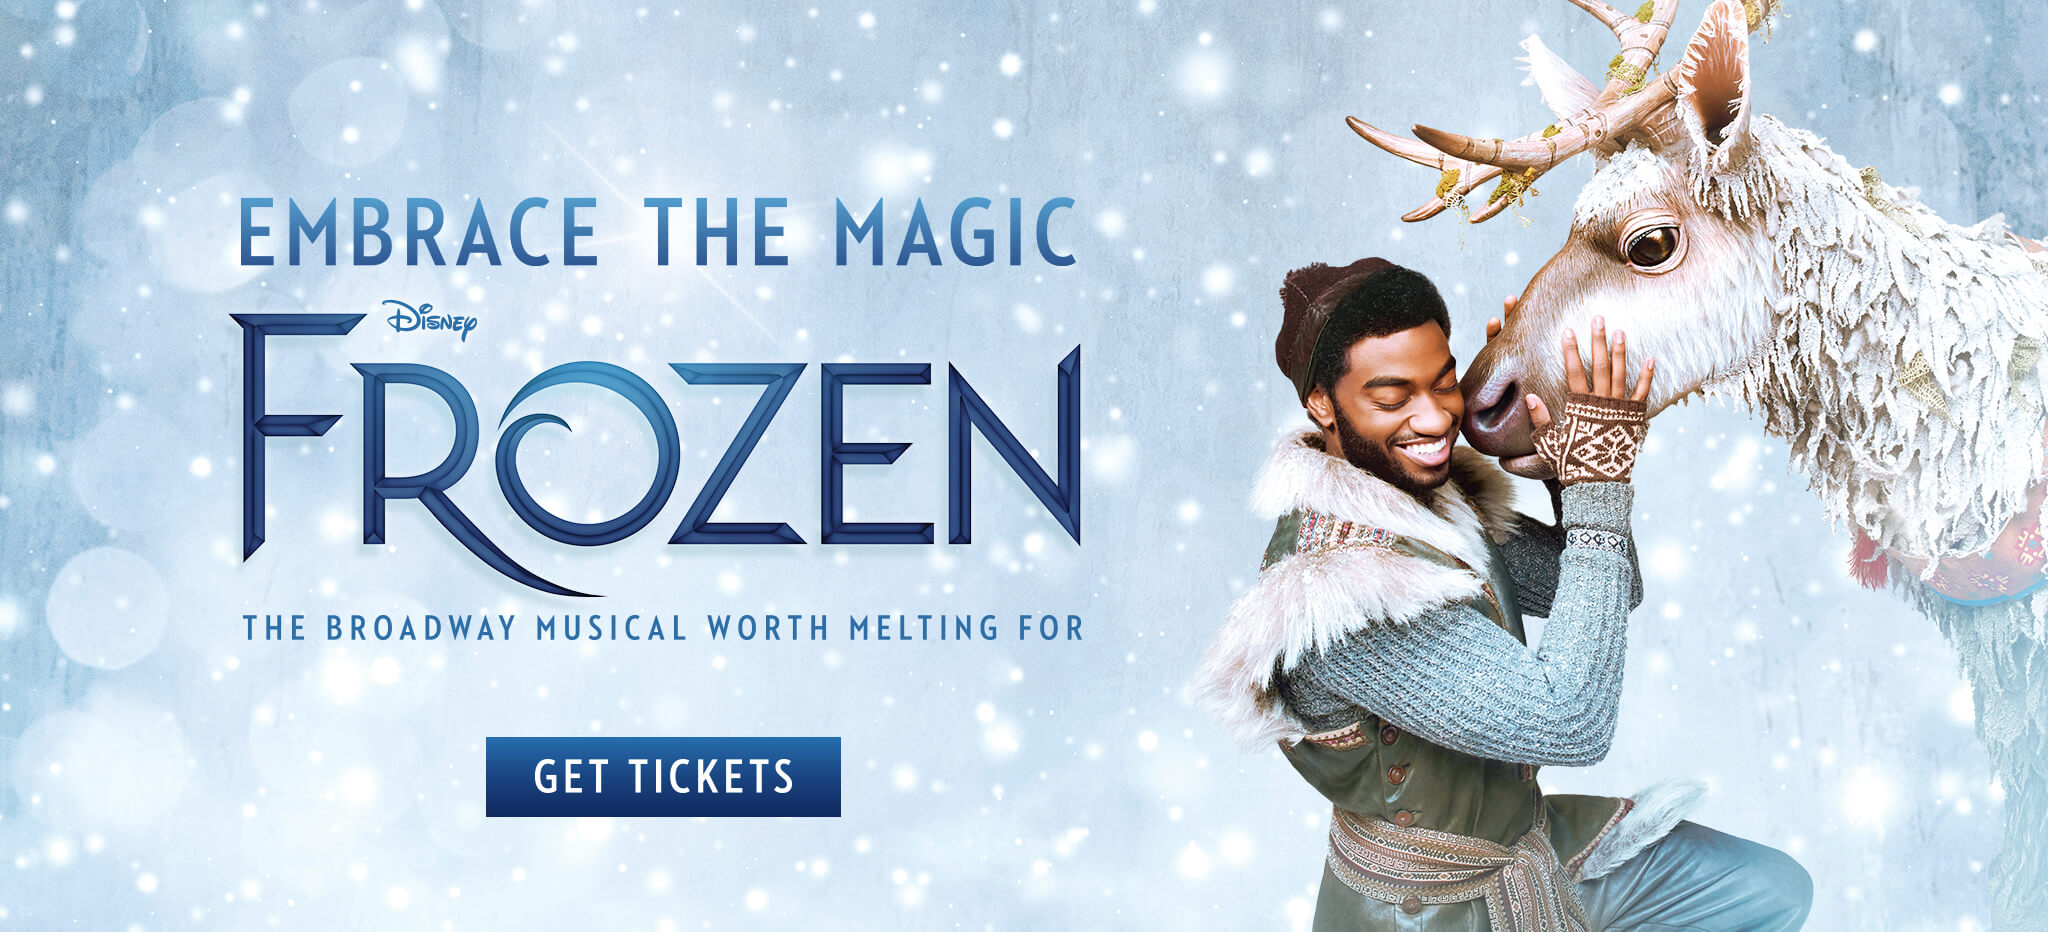 Embrace The Magic - FROZEN - The Broadway Musical Worth Melting For - Get Tickets